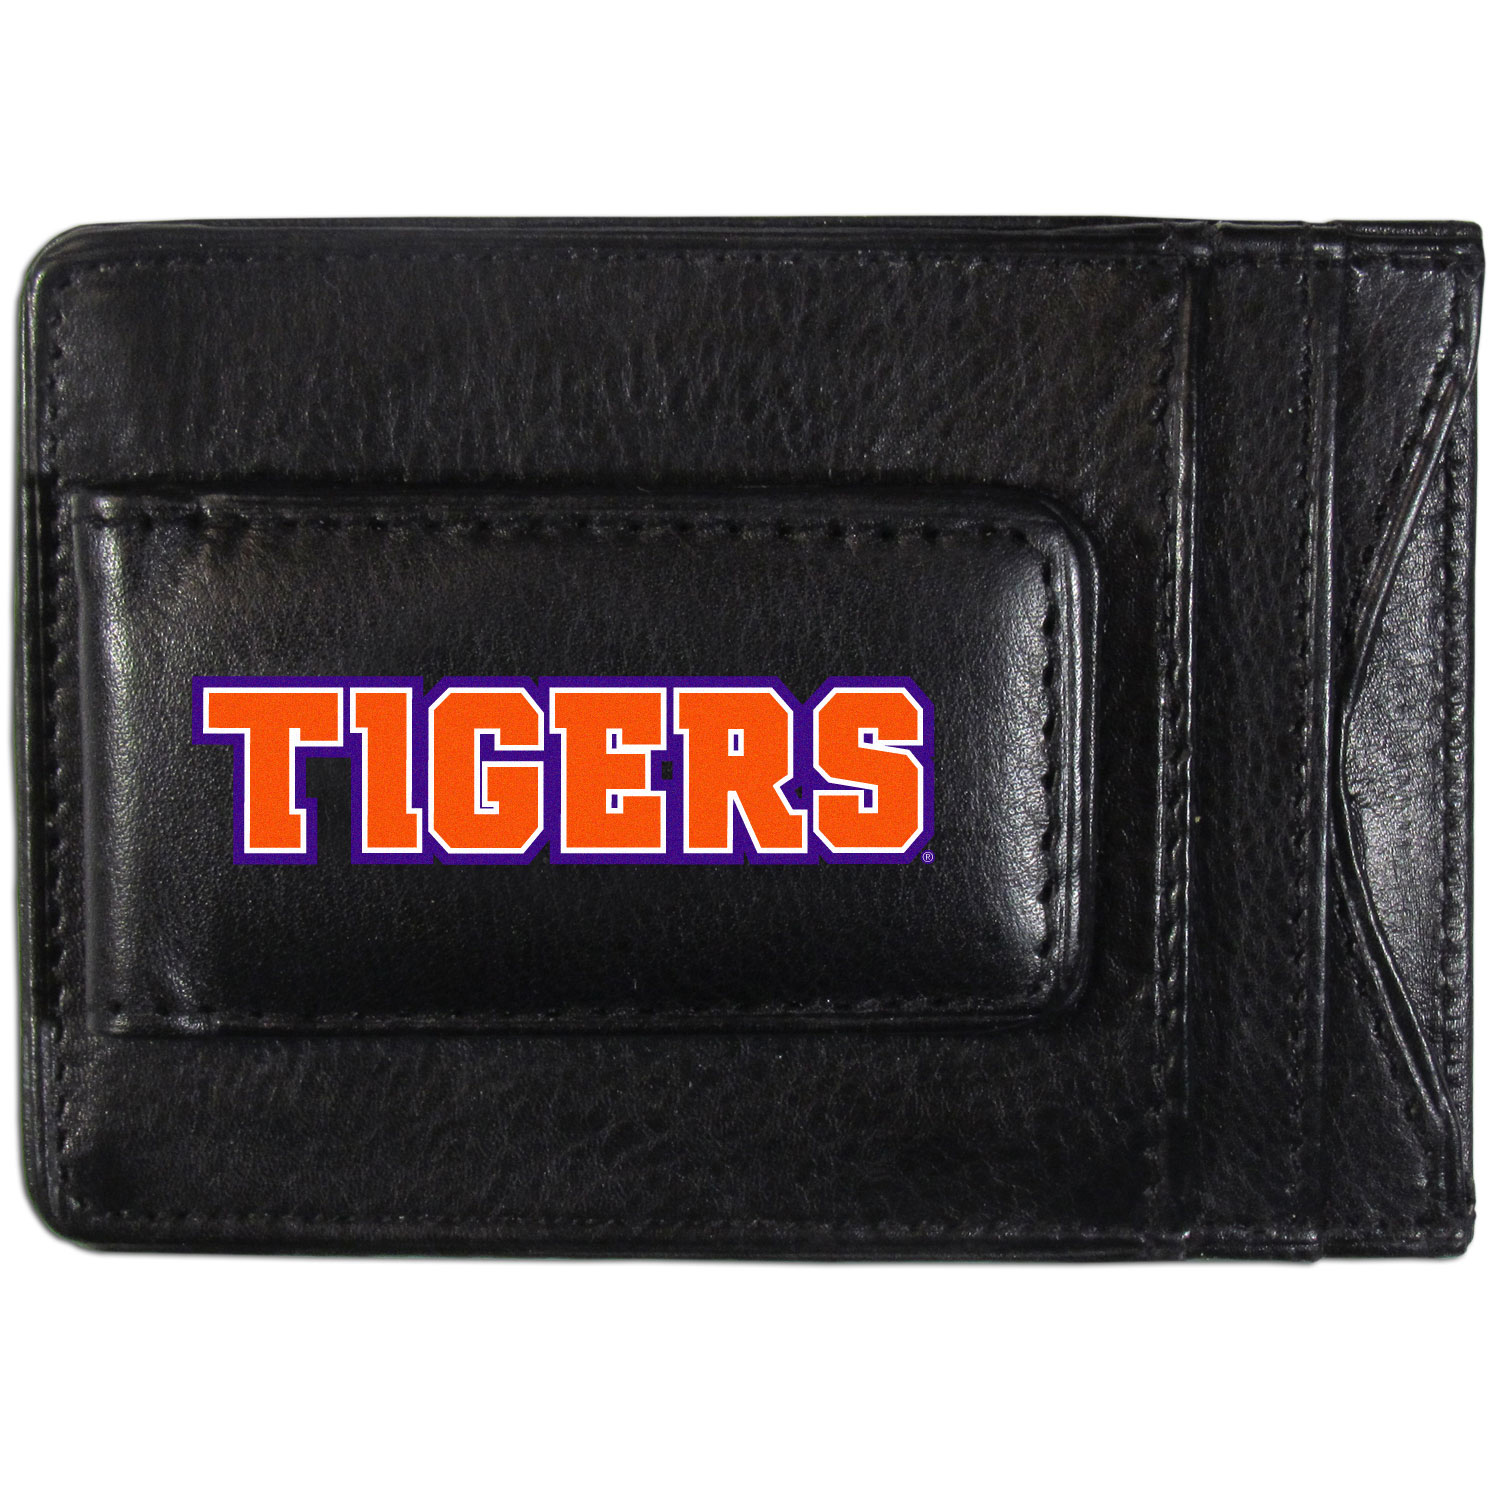 Clemson Tigers Logo Leather Cash and Cardholder - This super slim leather wallet lets you have all the benefits of a money clip while keeping the organization of a wallet. On one side of this front pocket wallet there is a strong, magnetic money clip to keep your cash easily accessible and the?Clemson Tigers team logo on the front. The versatile men's accessory is a perfect addition to your fan apparel.